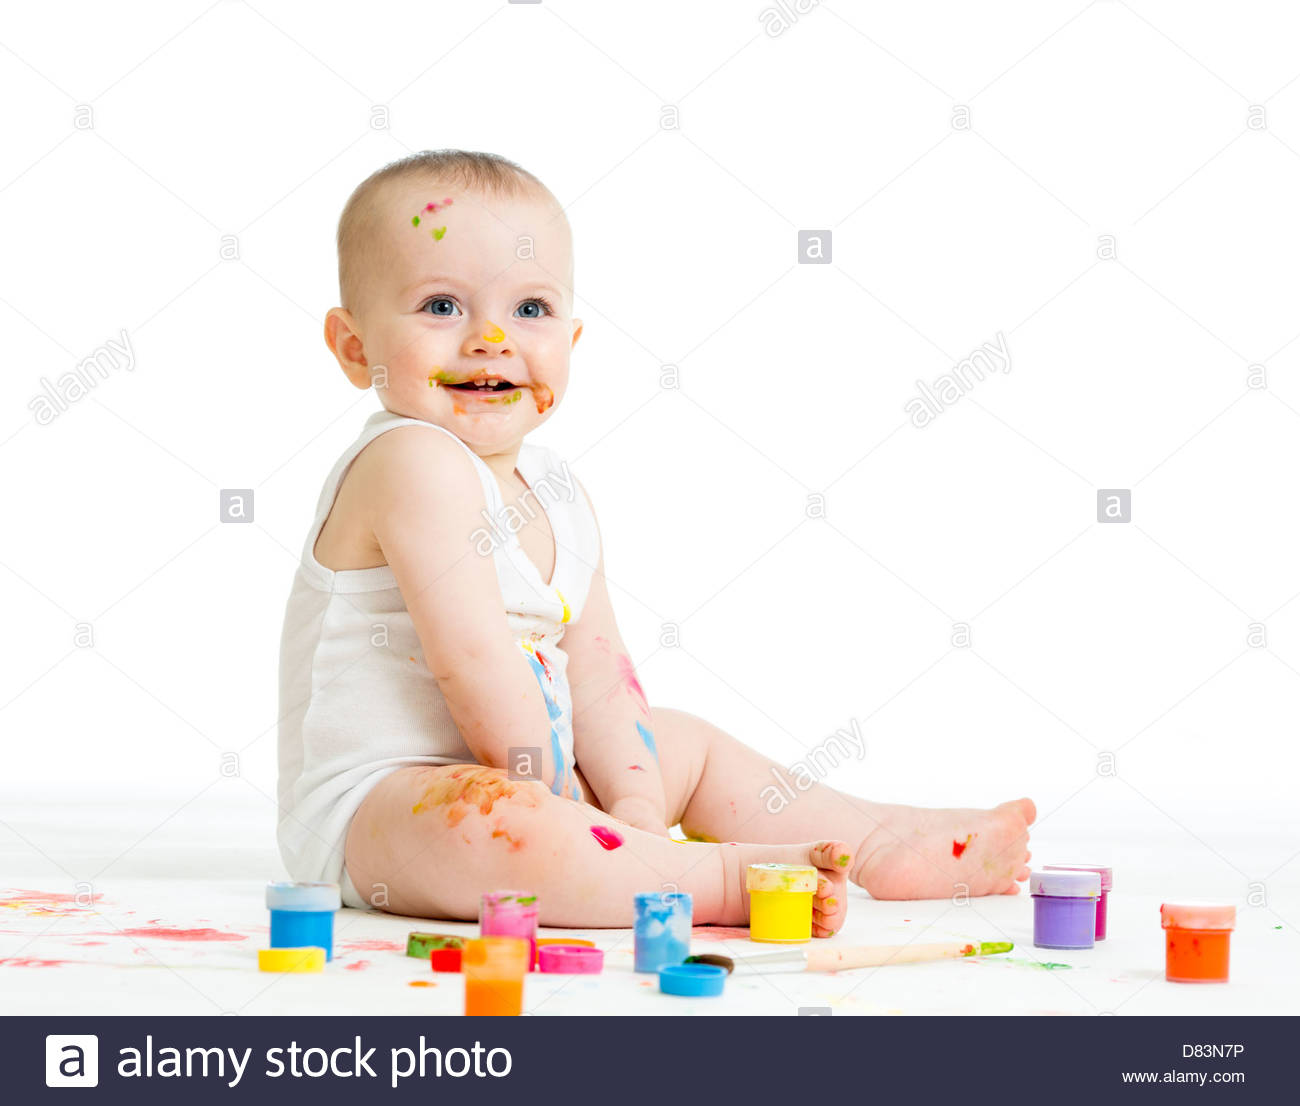 1300x1106 Smiling Baby Drawing With A Finger's Paints Stock Photo 56630890